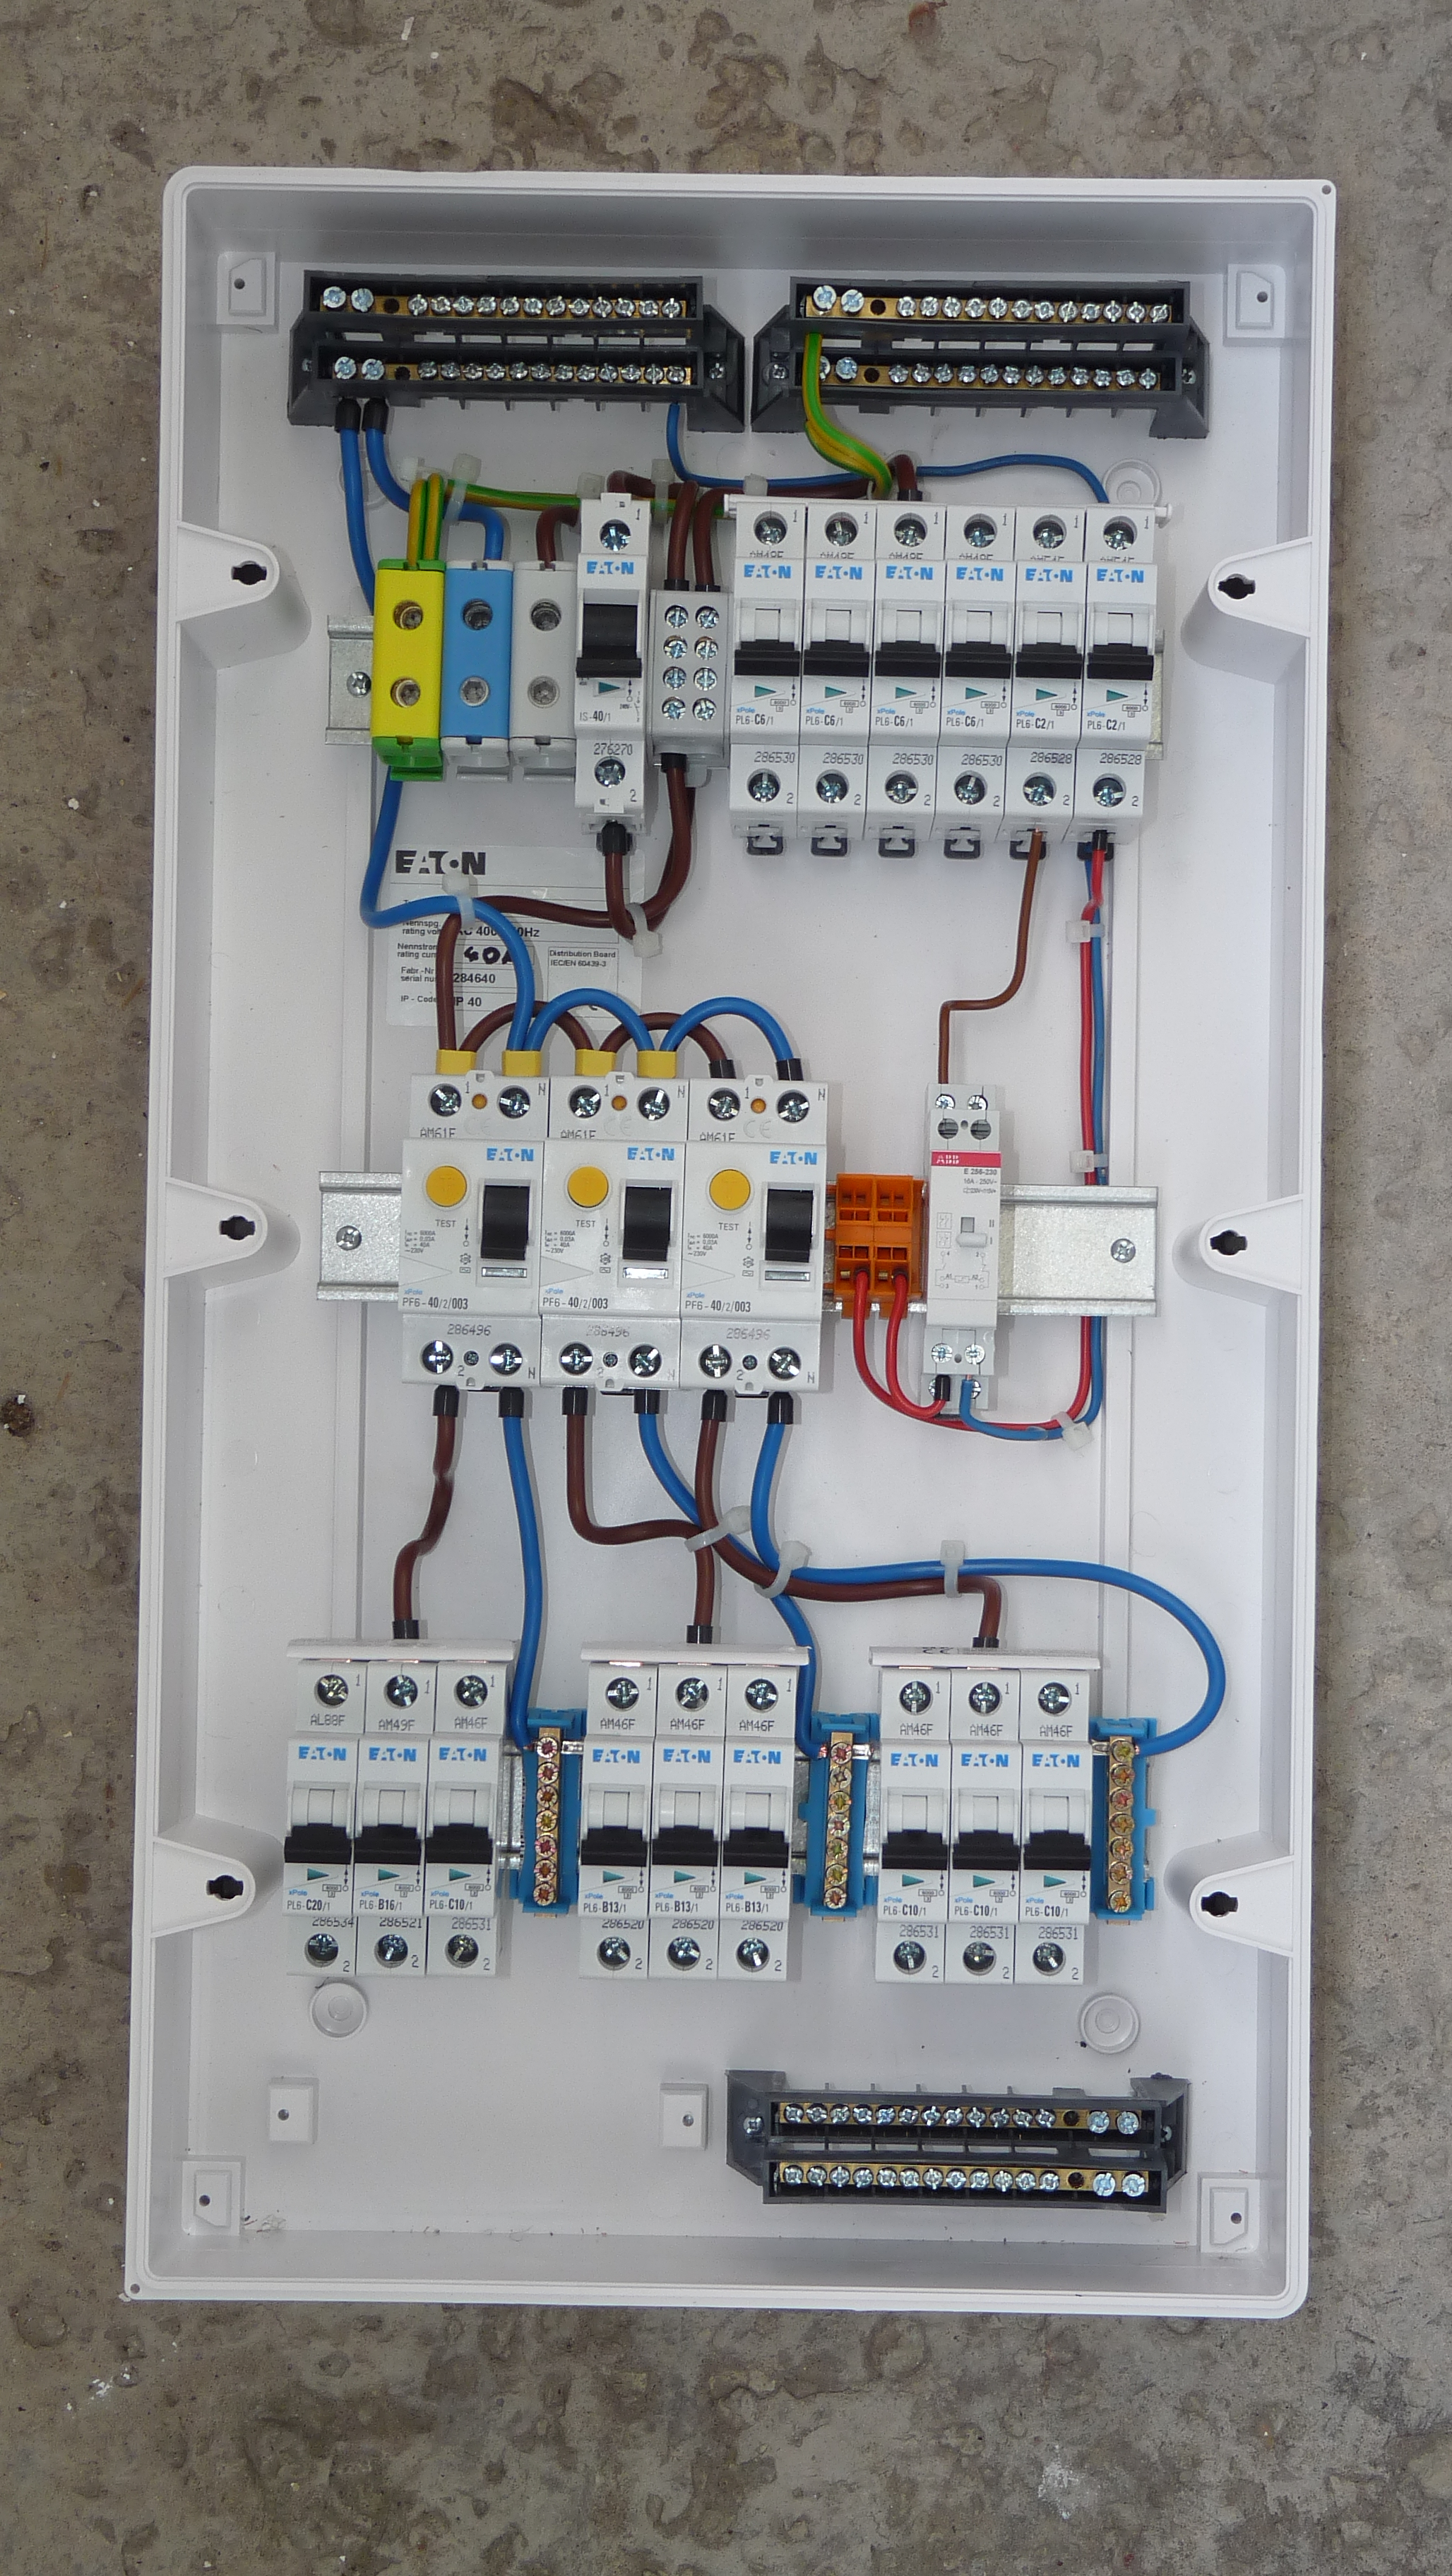 File paekaare 24 fuse box jpg wikimedia commons for Best electrical panel for house